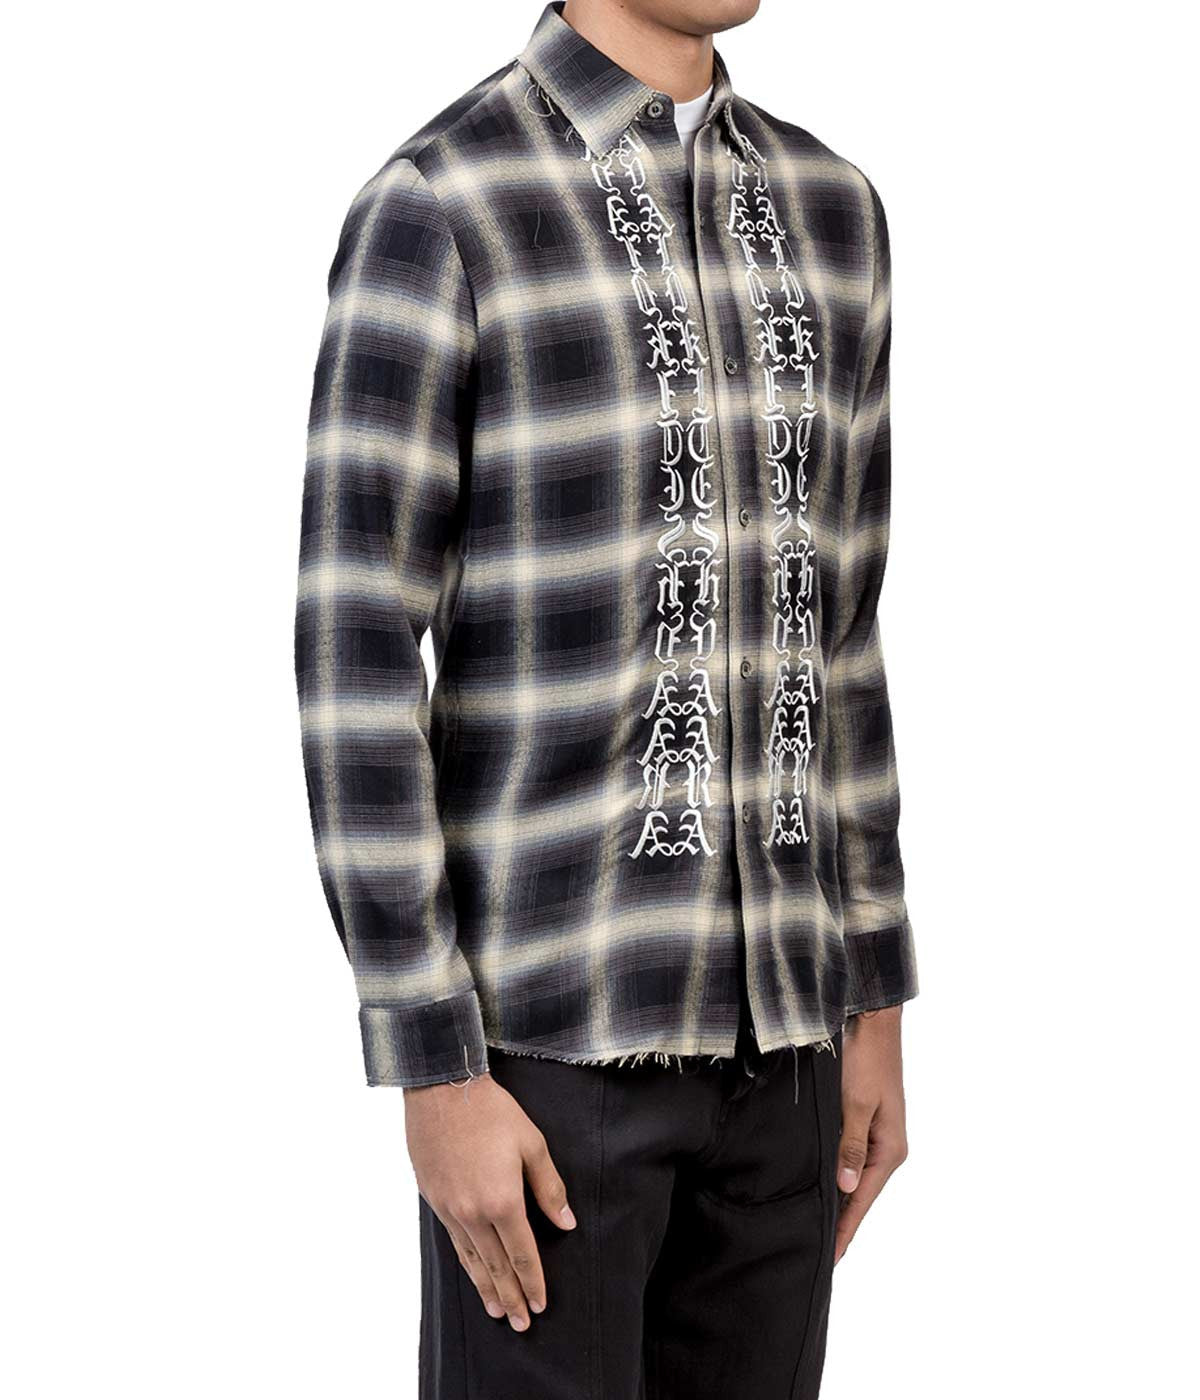 Black Embroidered Plaid Shirt